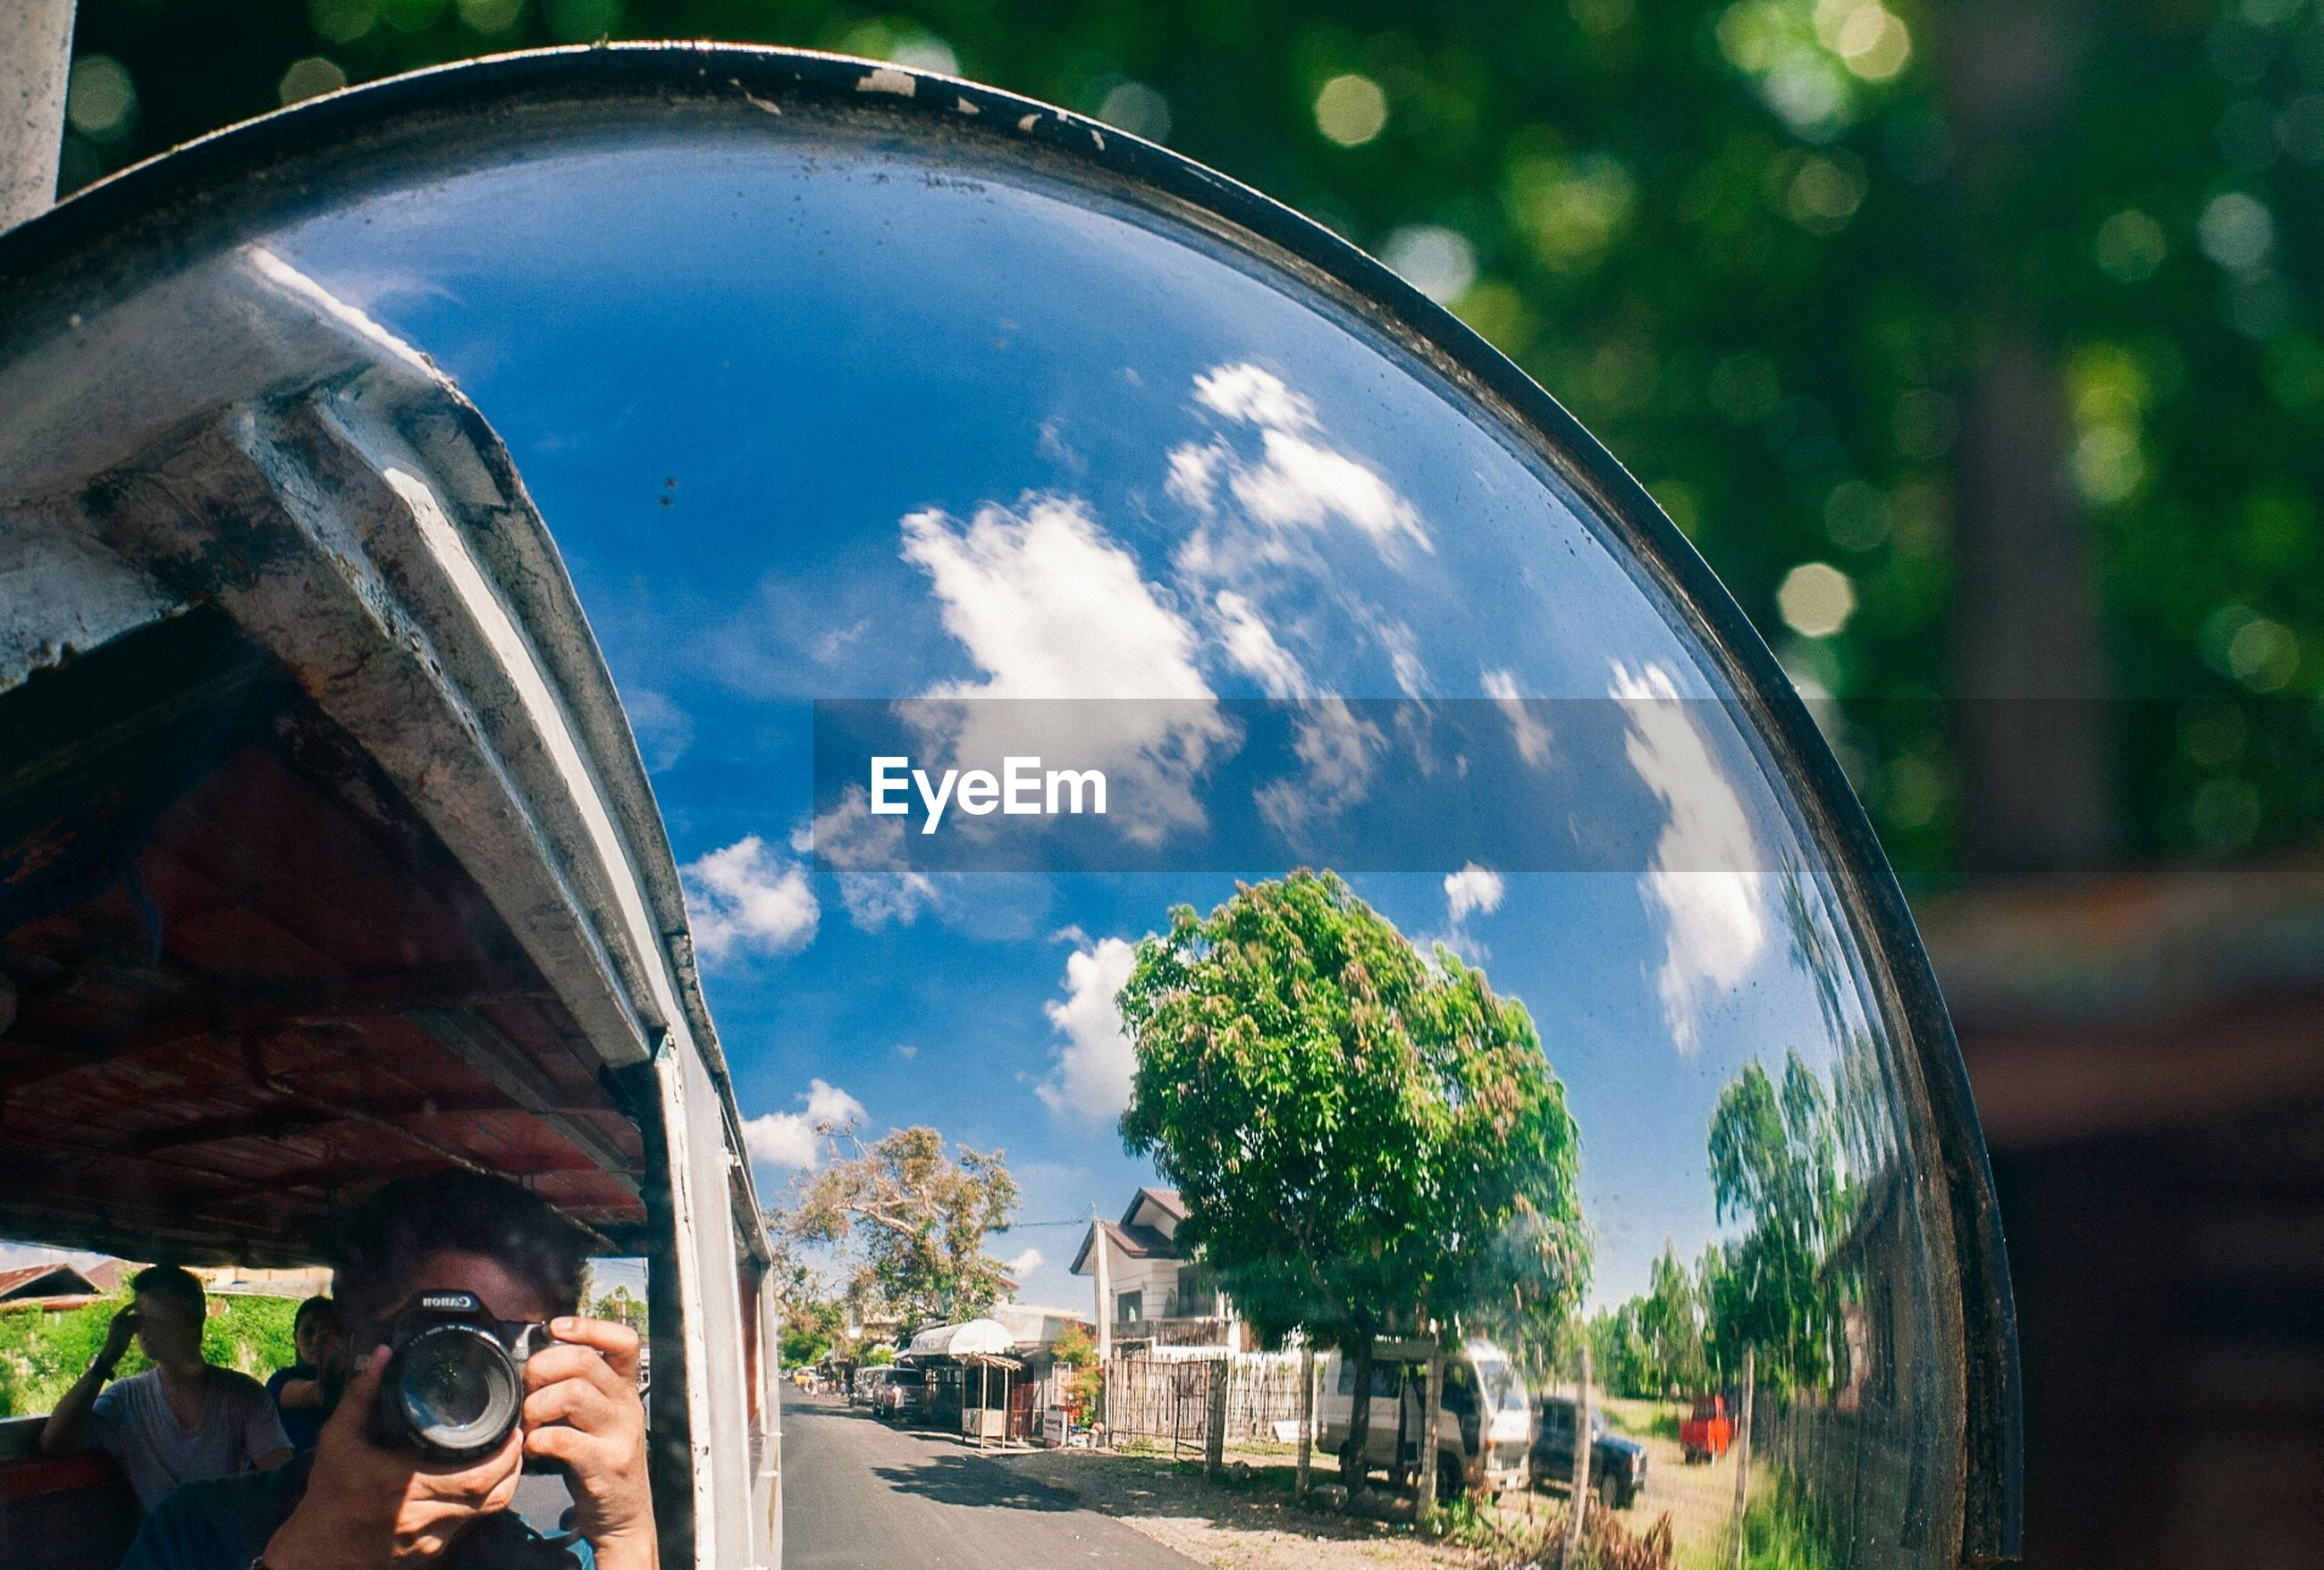 sky, car, land vehicle, transportation, cloud - sky, mode of transport, tree, reflection, cloud, fish-eye lens, street, built structure, glass - material, building exterior, architecture, transparent, day, blue